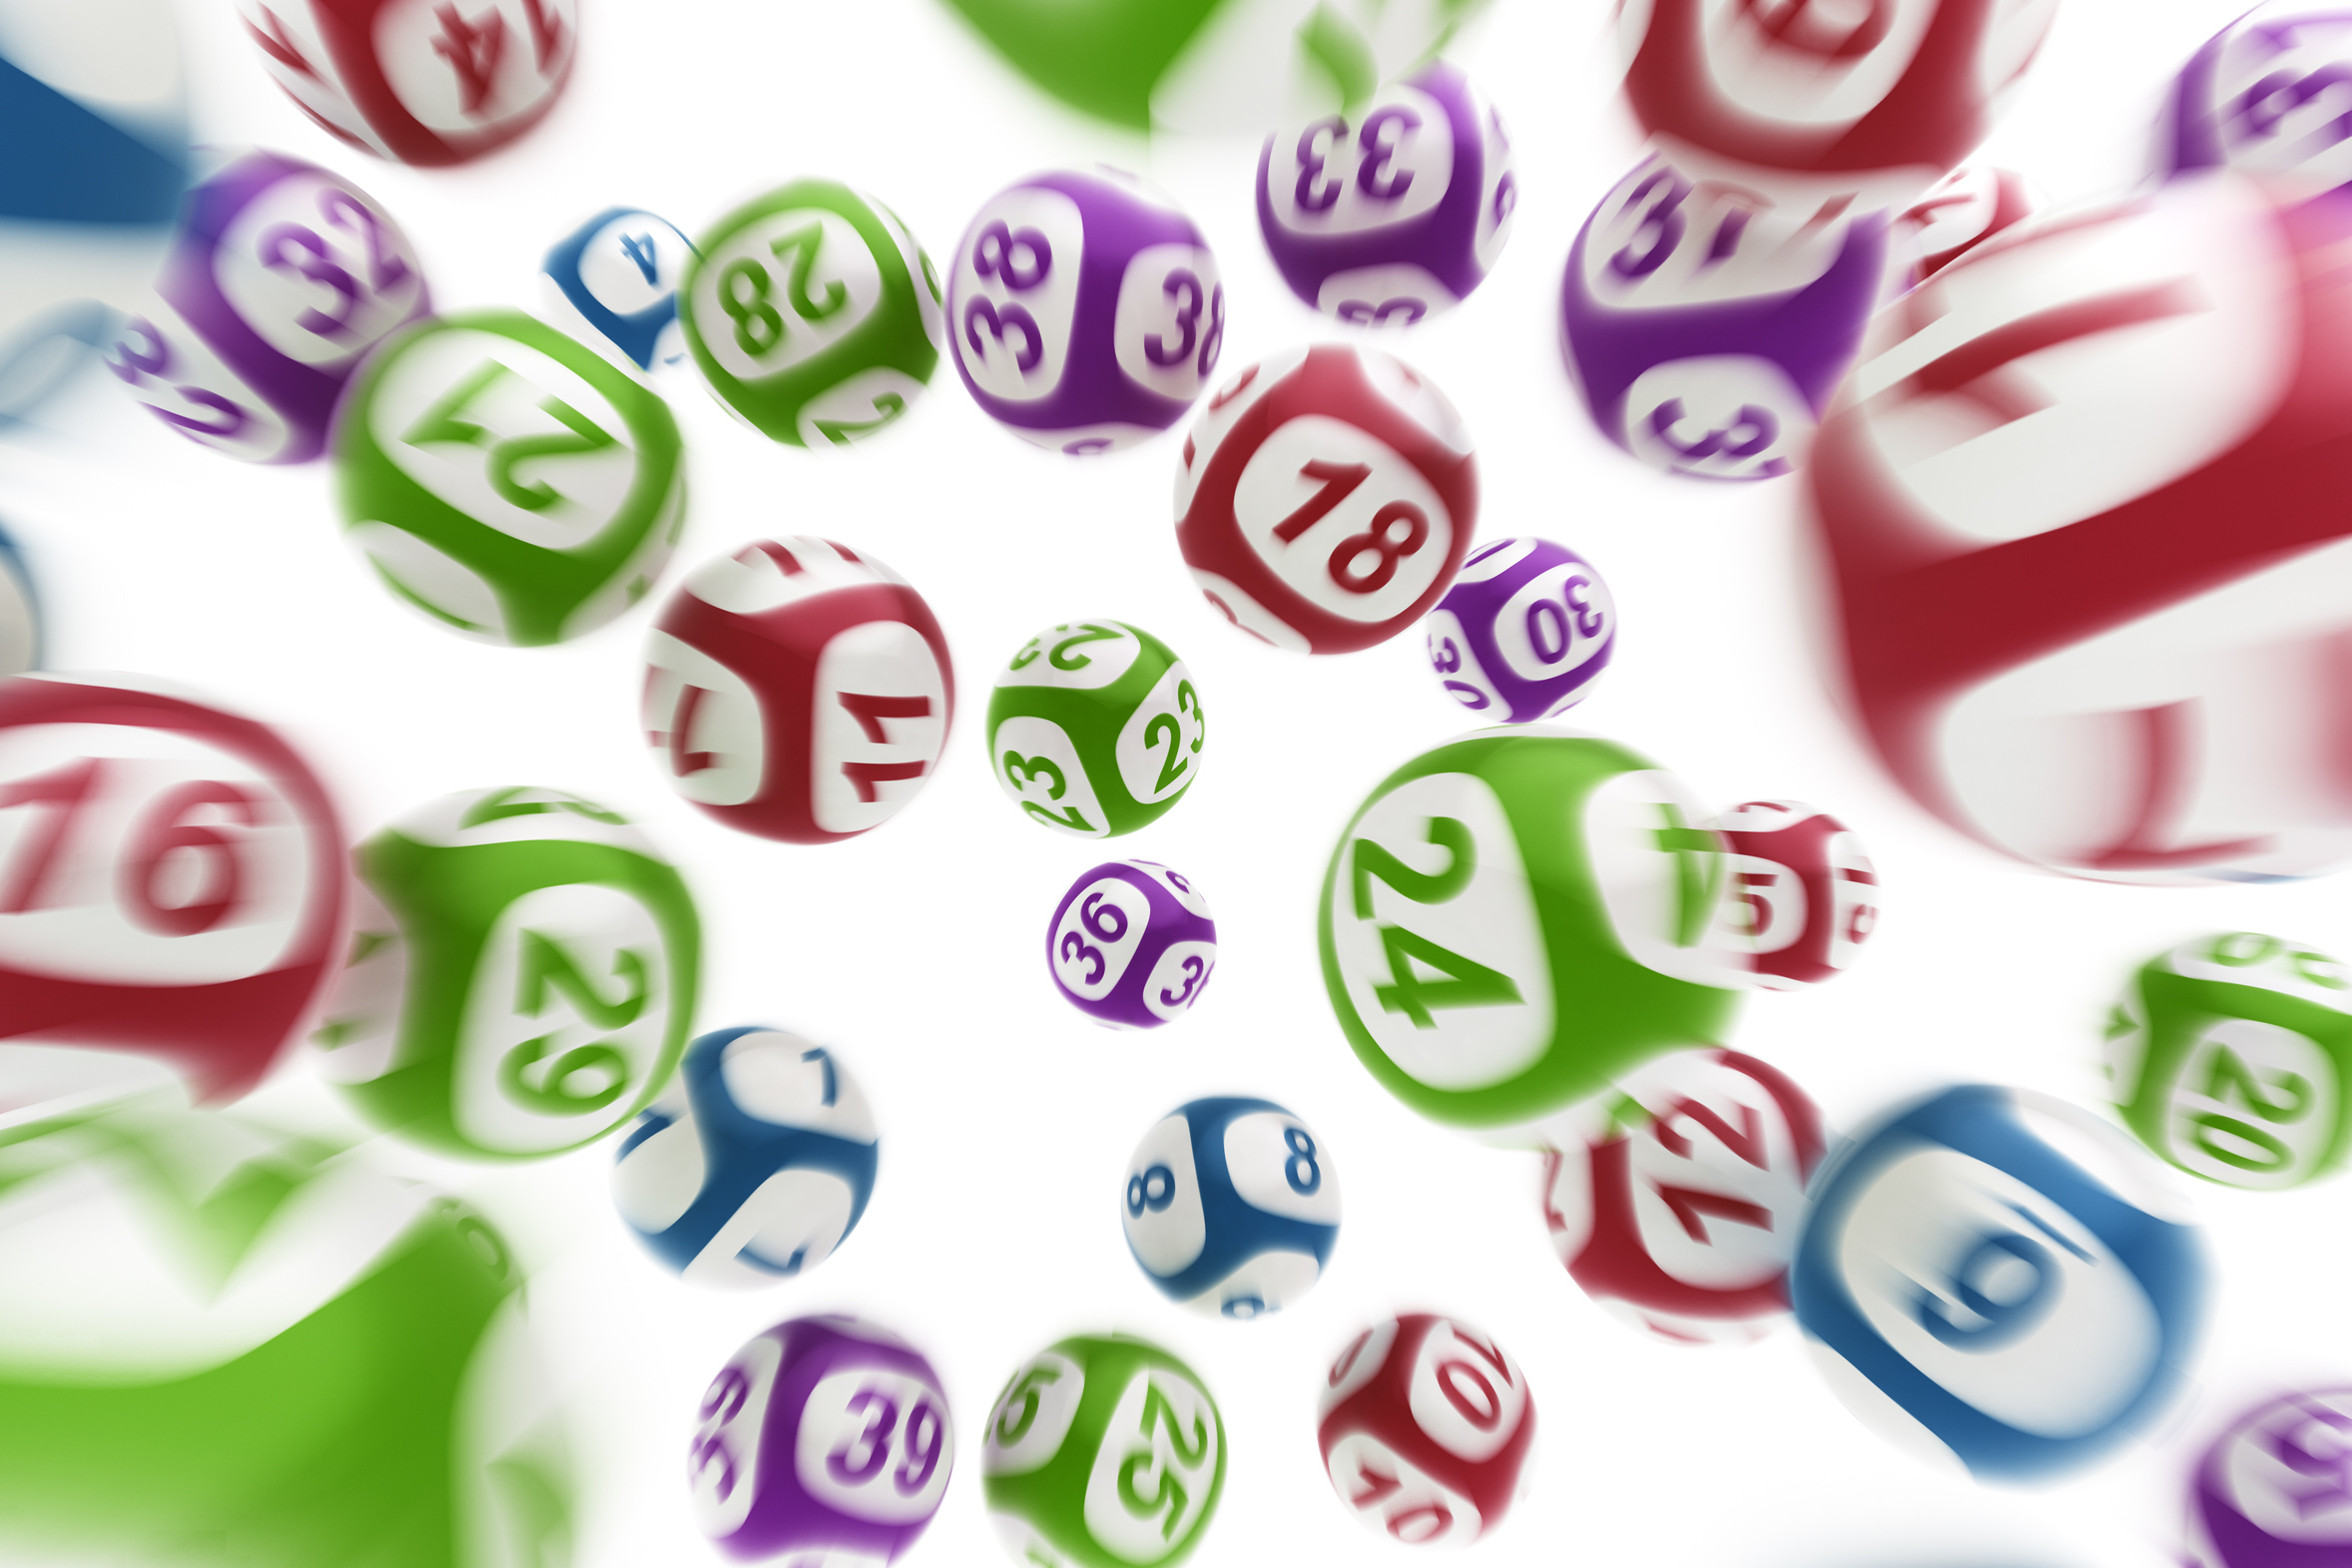 3d Rendering Of Flying Lottery Balls